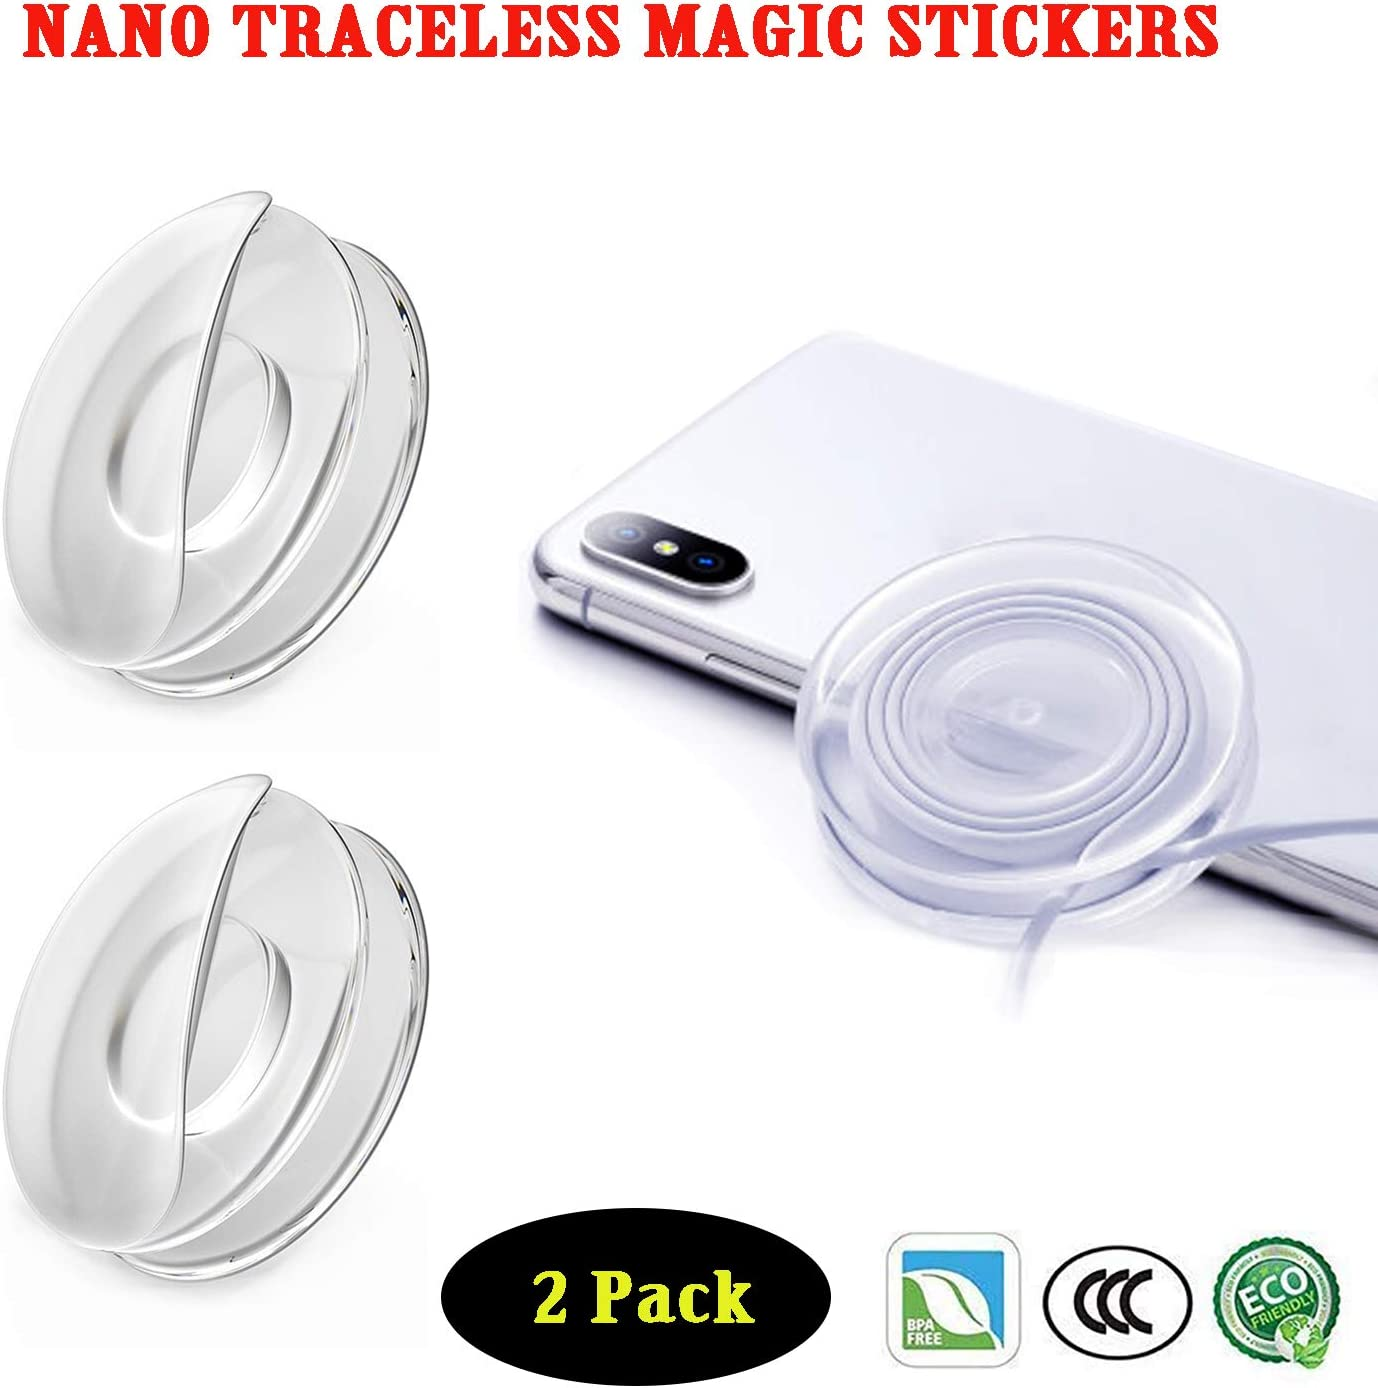 4 Pack Home Office Storage of Various Small Device and Items,Easy Remove. Sticky Gel Pads Magic Sticker,Universal Non-Slip Mats, Washable Reuse,Suitable Nano Casual Paste for Car